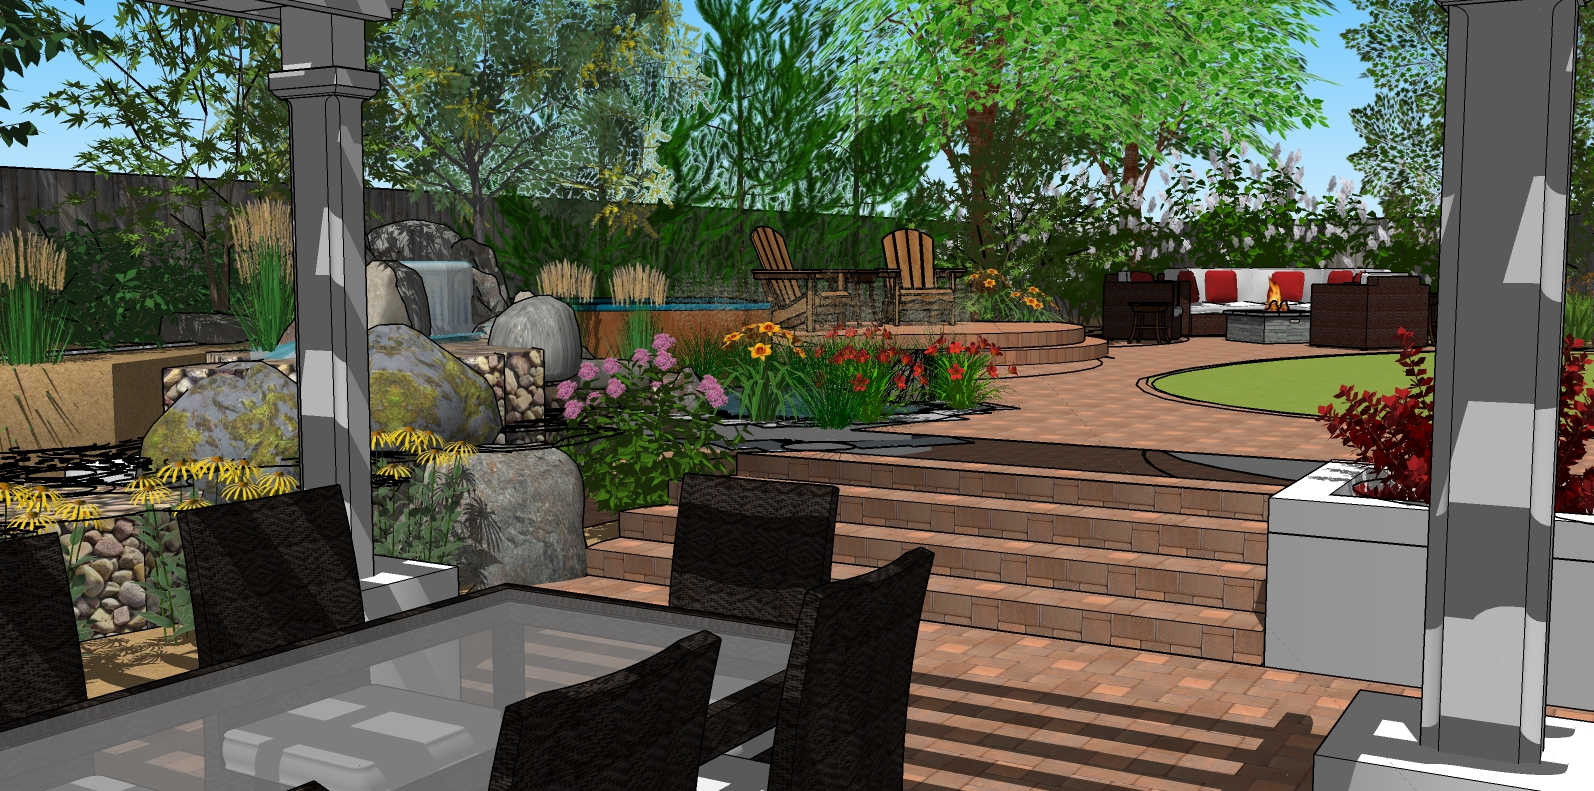 Advantages of Working With Highly Experienced Landscaping Companies in Rocklin, CA